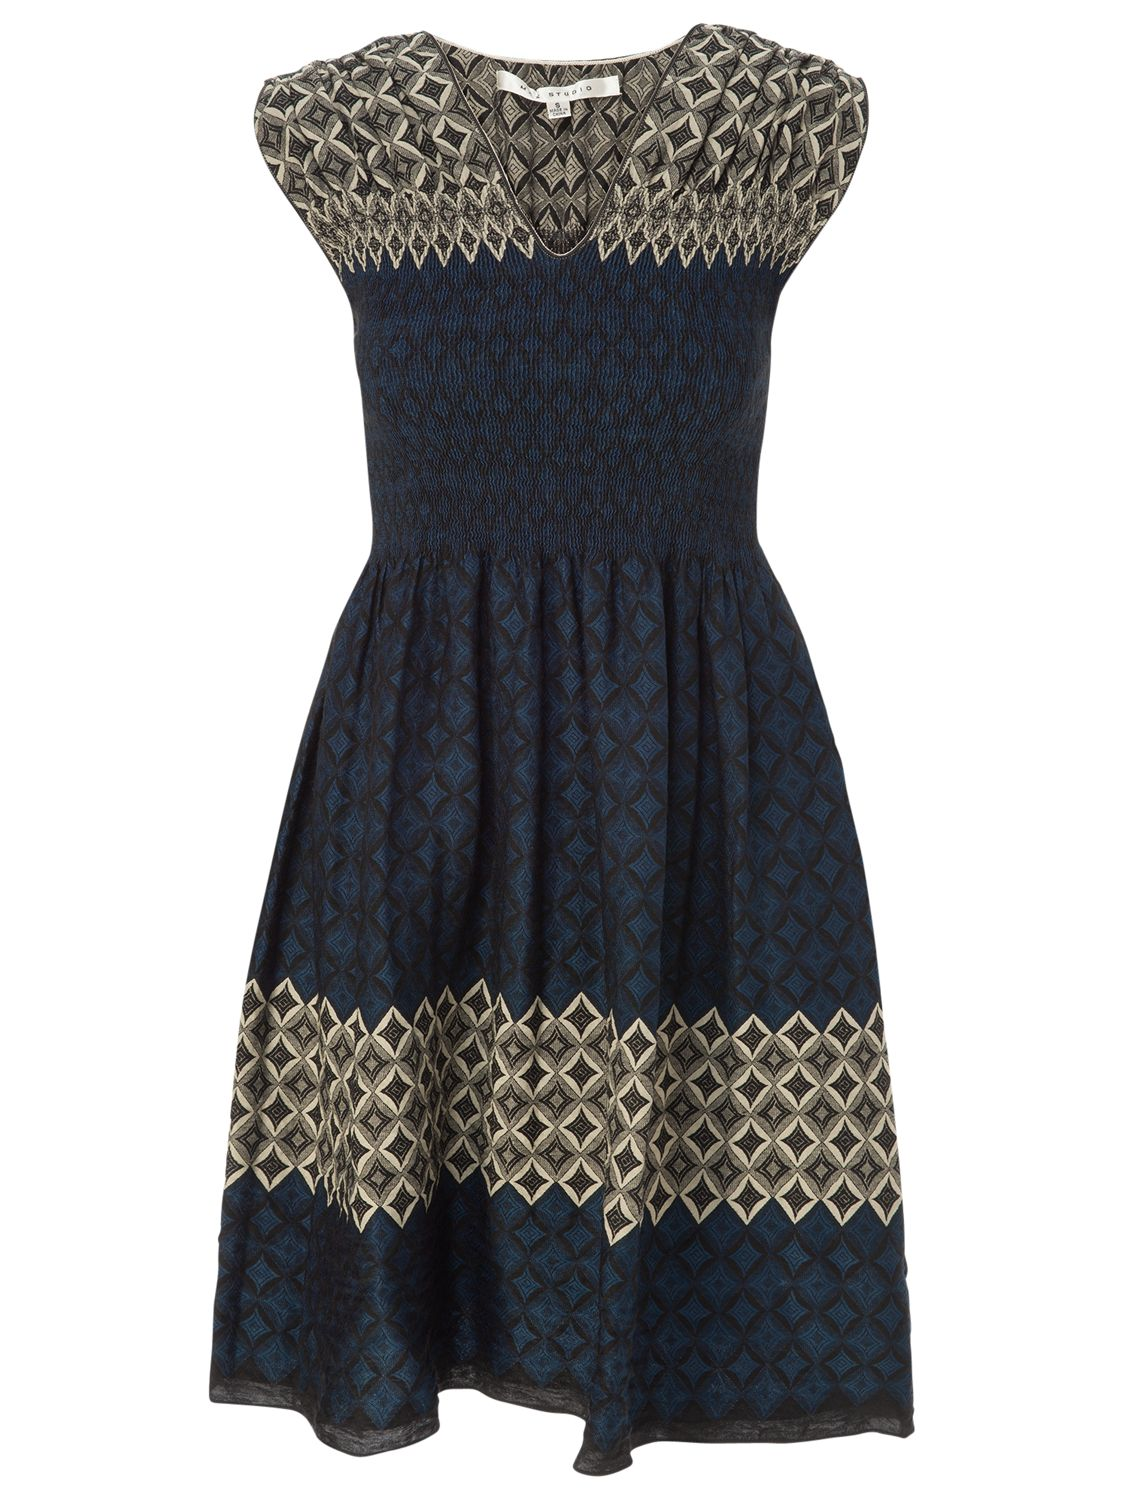 max studio smocked jacquard dress black/blue, max, studio, smocked, jacquard, dress, black/blue, max studio, s|m|xs|l, women, womens dresses, 1771799